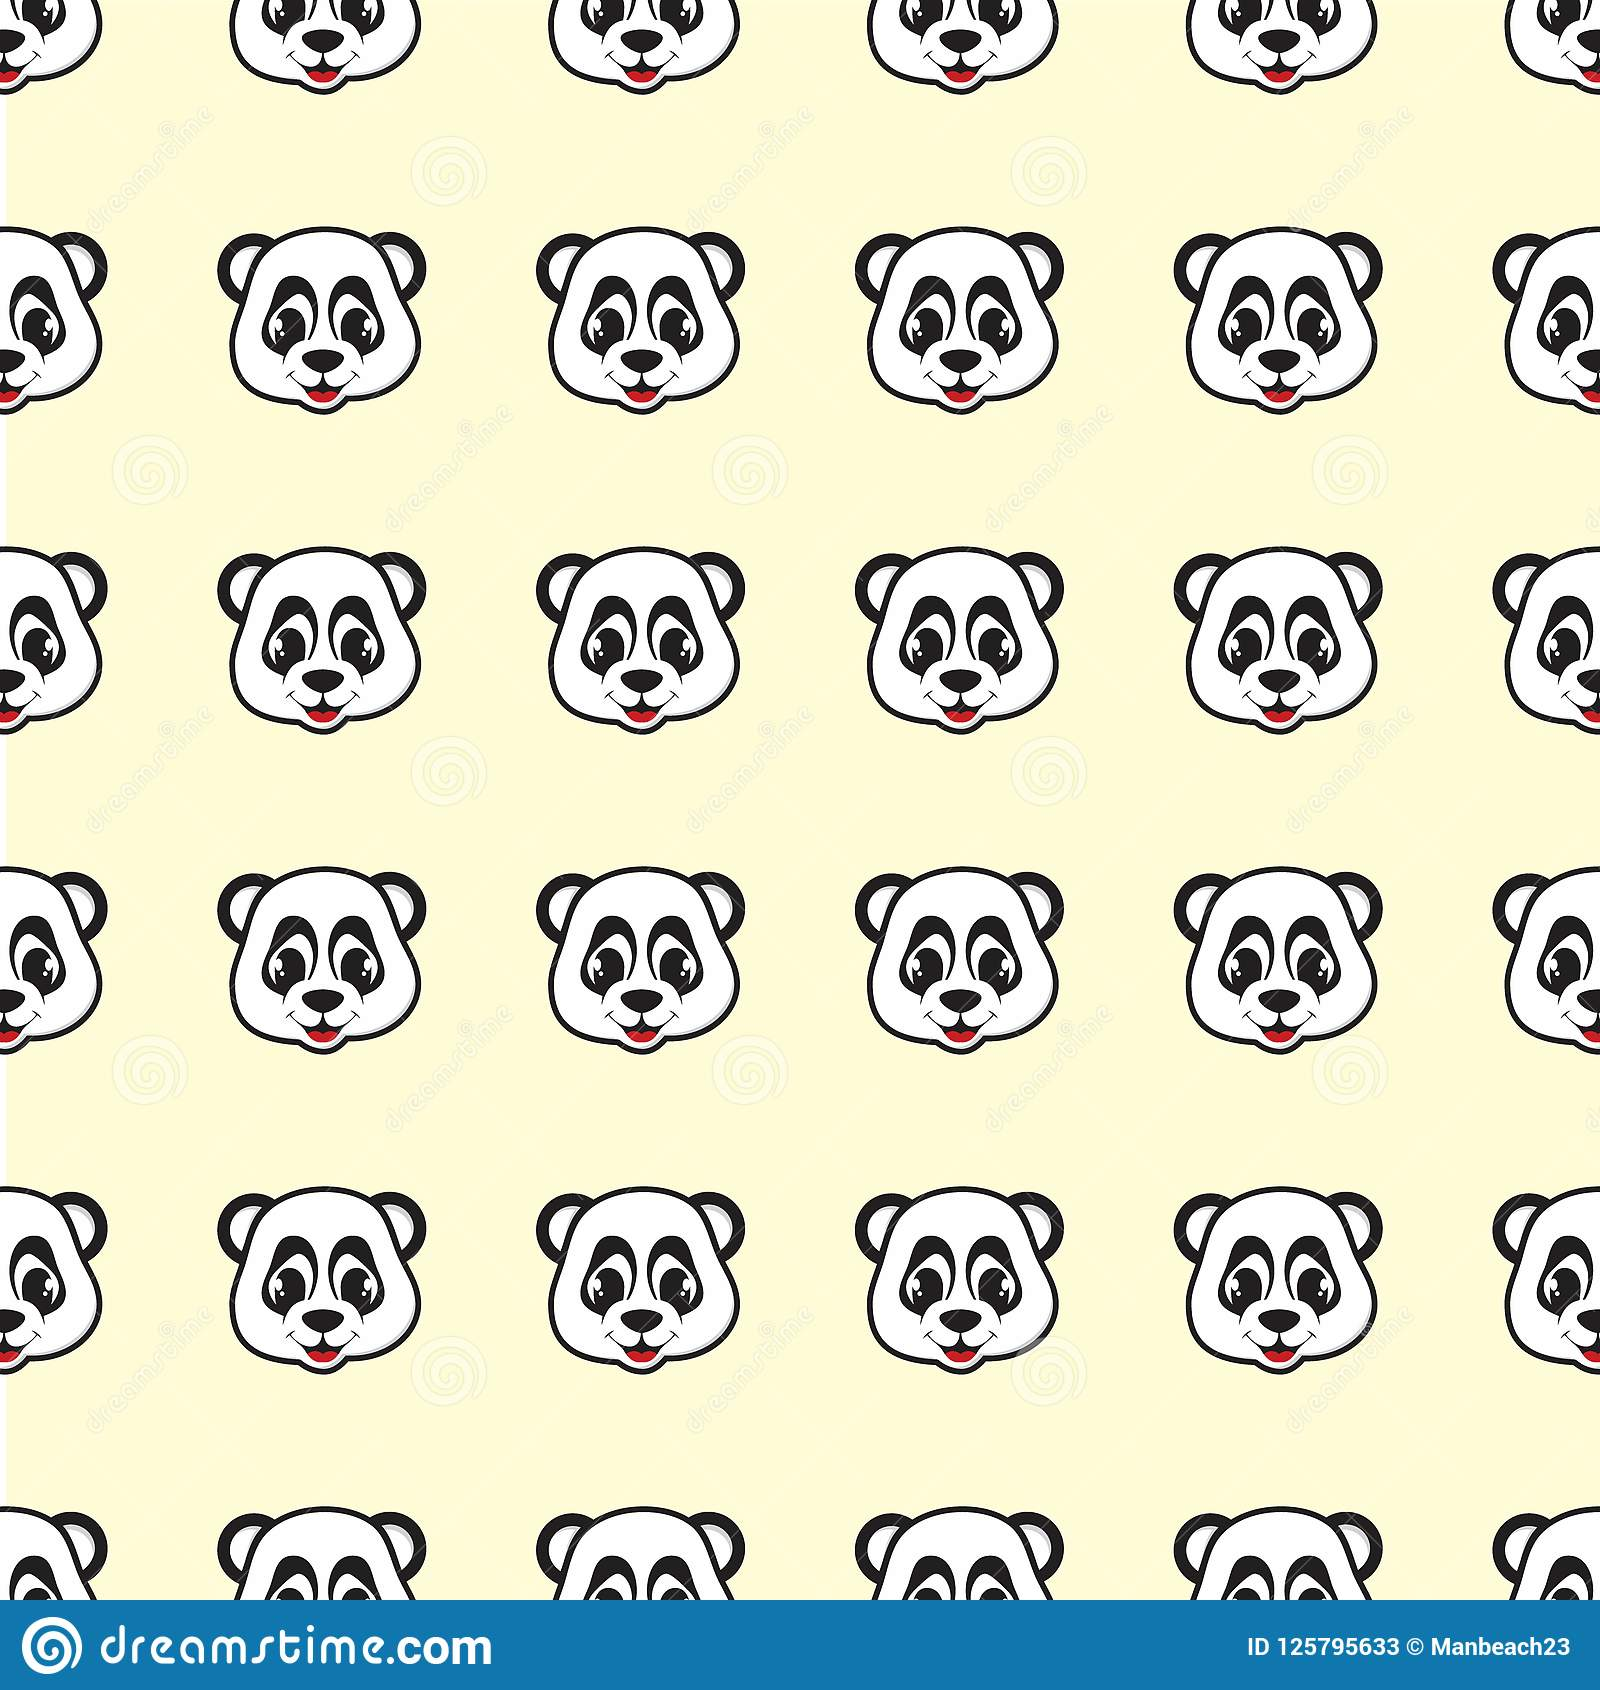 Funny design smile Panda cartoon seamless pattern for background and wallpaper